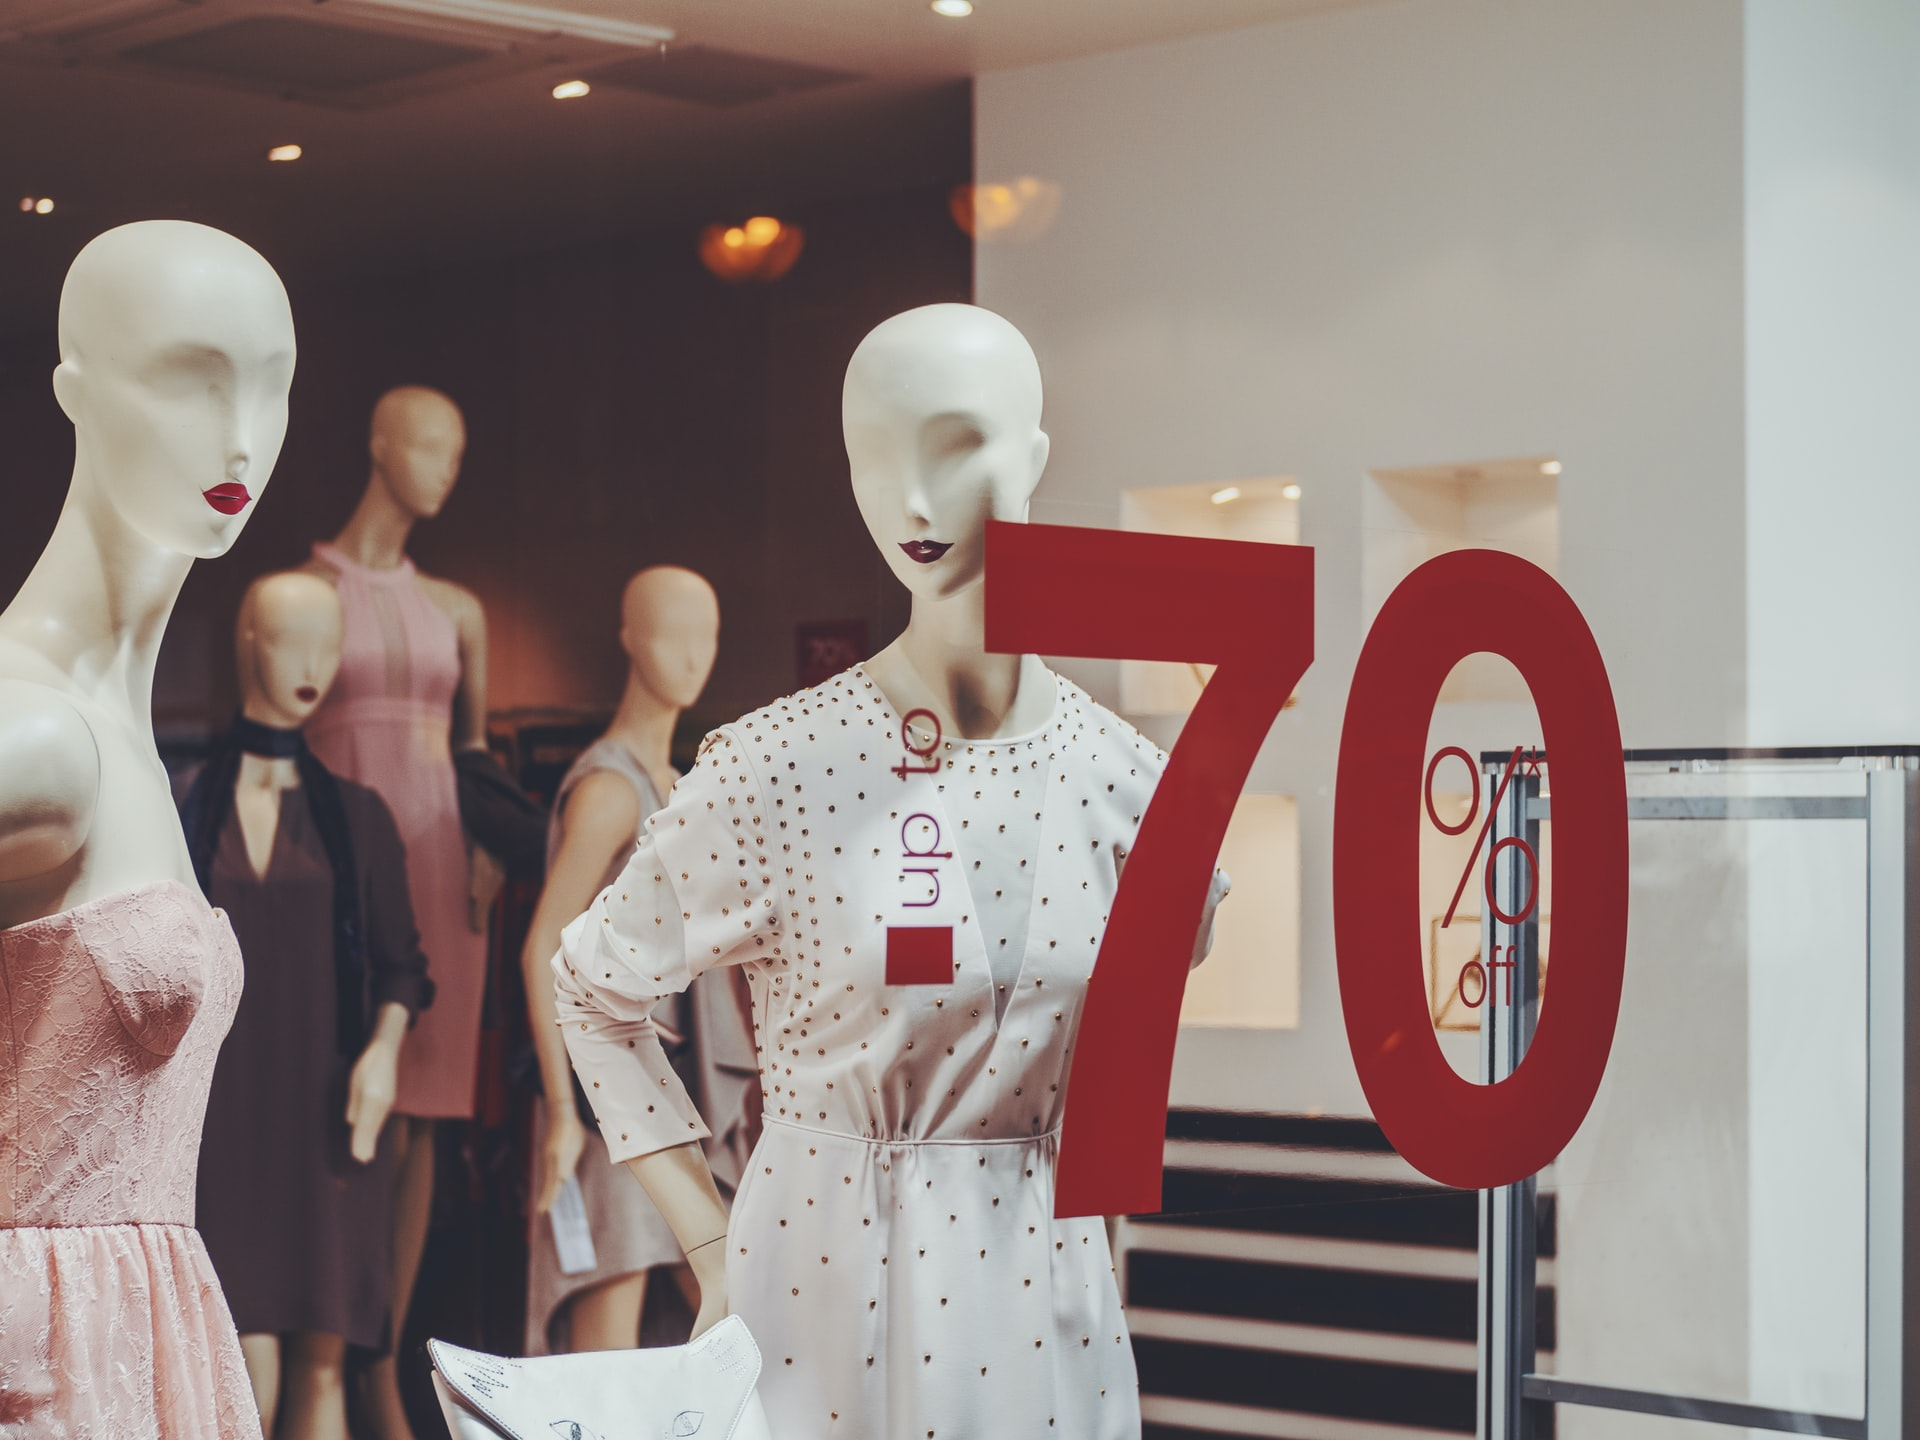 Top Branding Tips That Can Improve Sales Of Apparel Manufacturing Companies